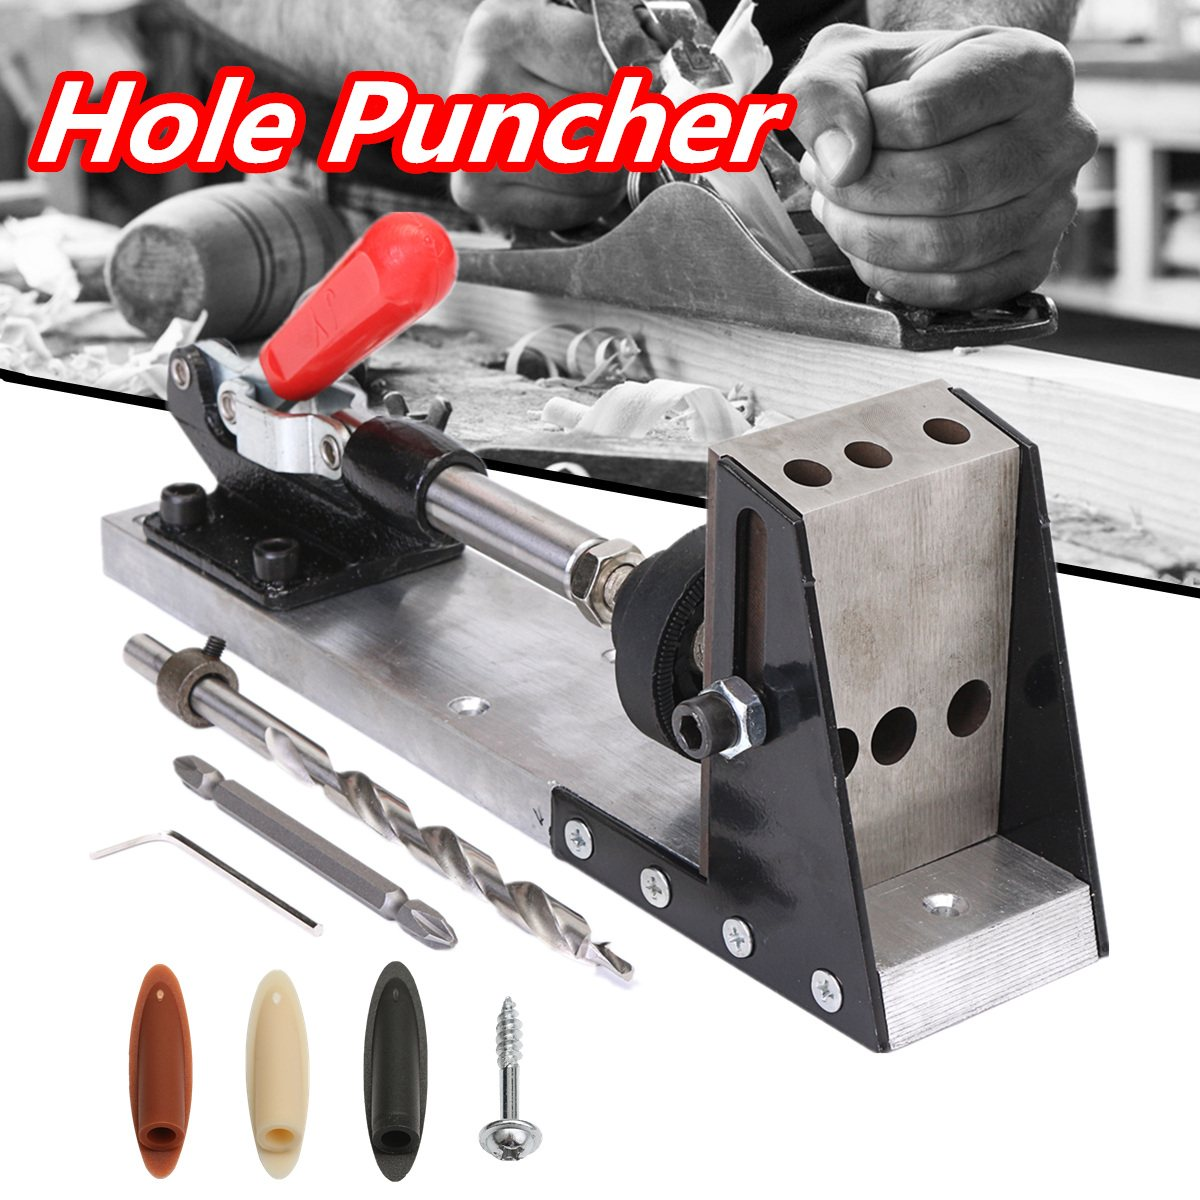 Woodworking Tool Pocket-Hole Puncher Jig Drill Guide Master Kit Carpenter Joinery System Woodworking Plug Cut Tool все цены